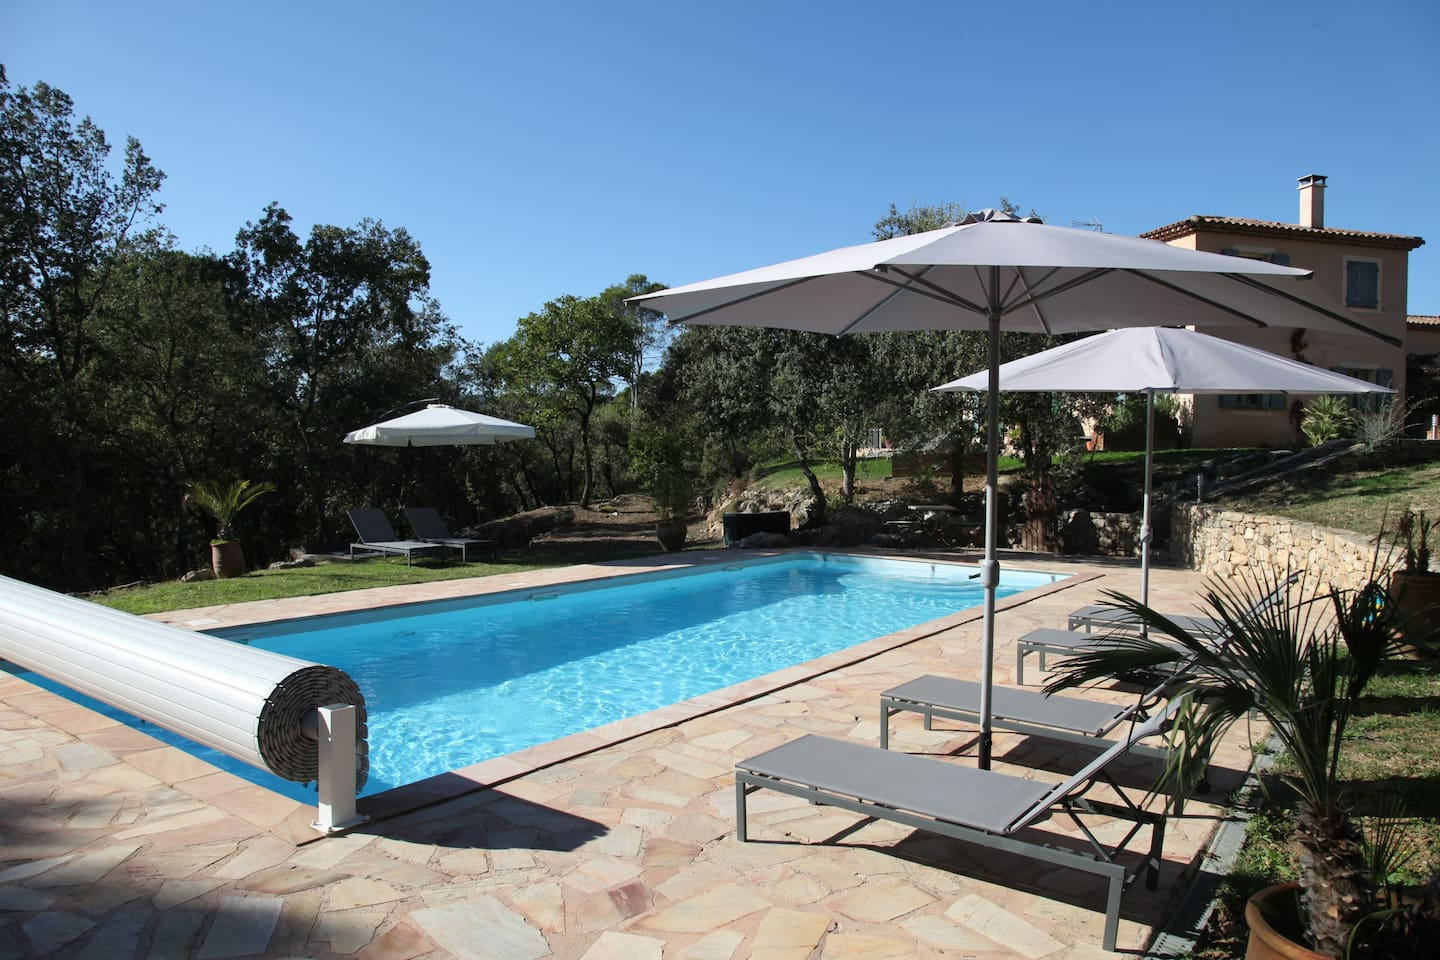 Heated pool 14x5m (April-Oct)